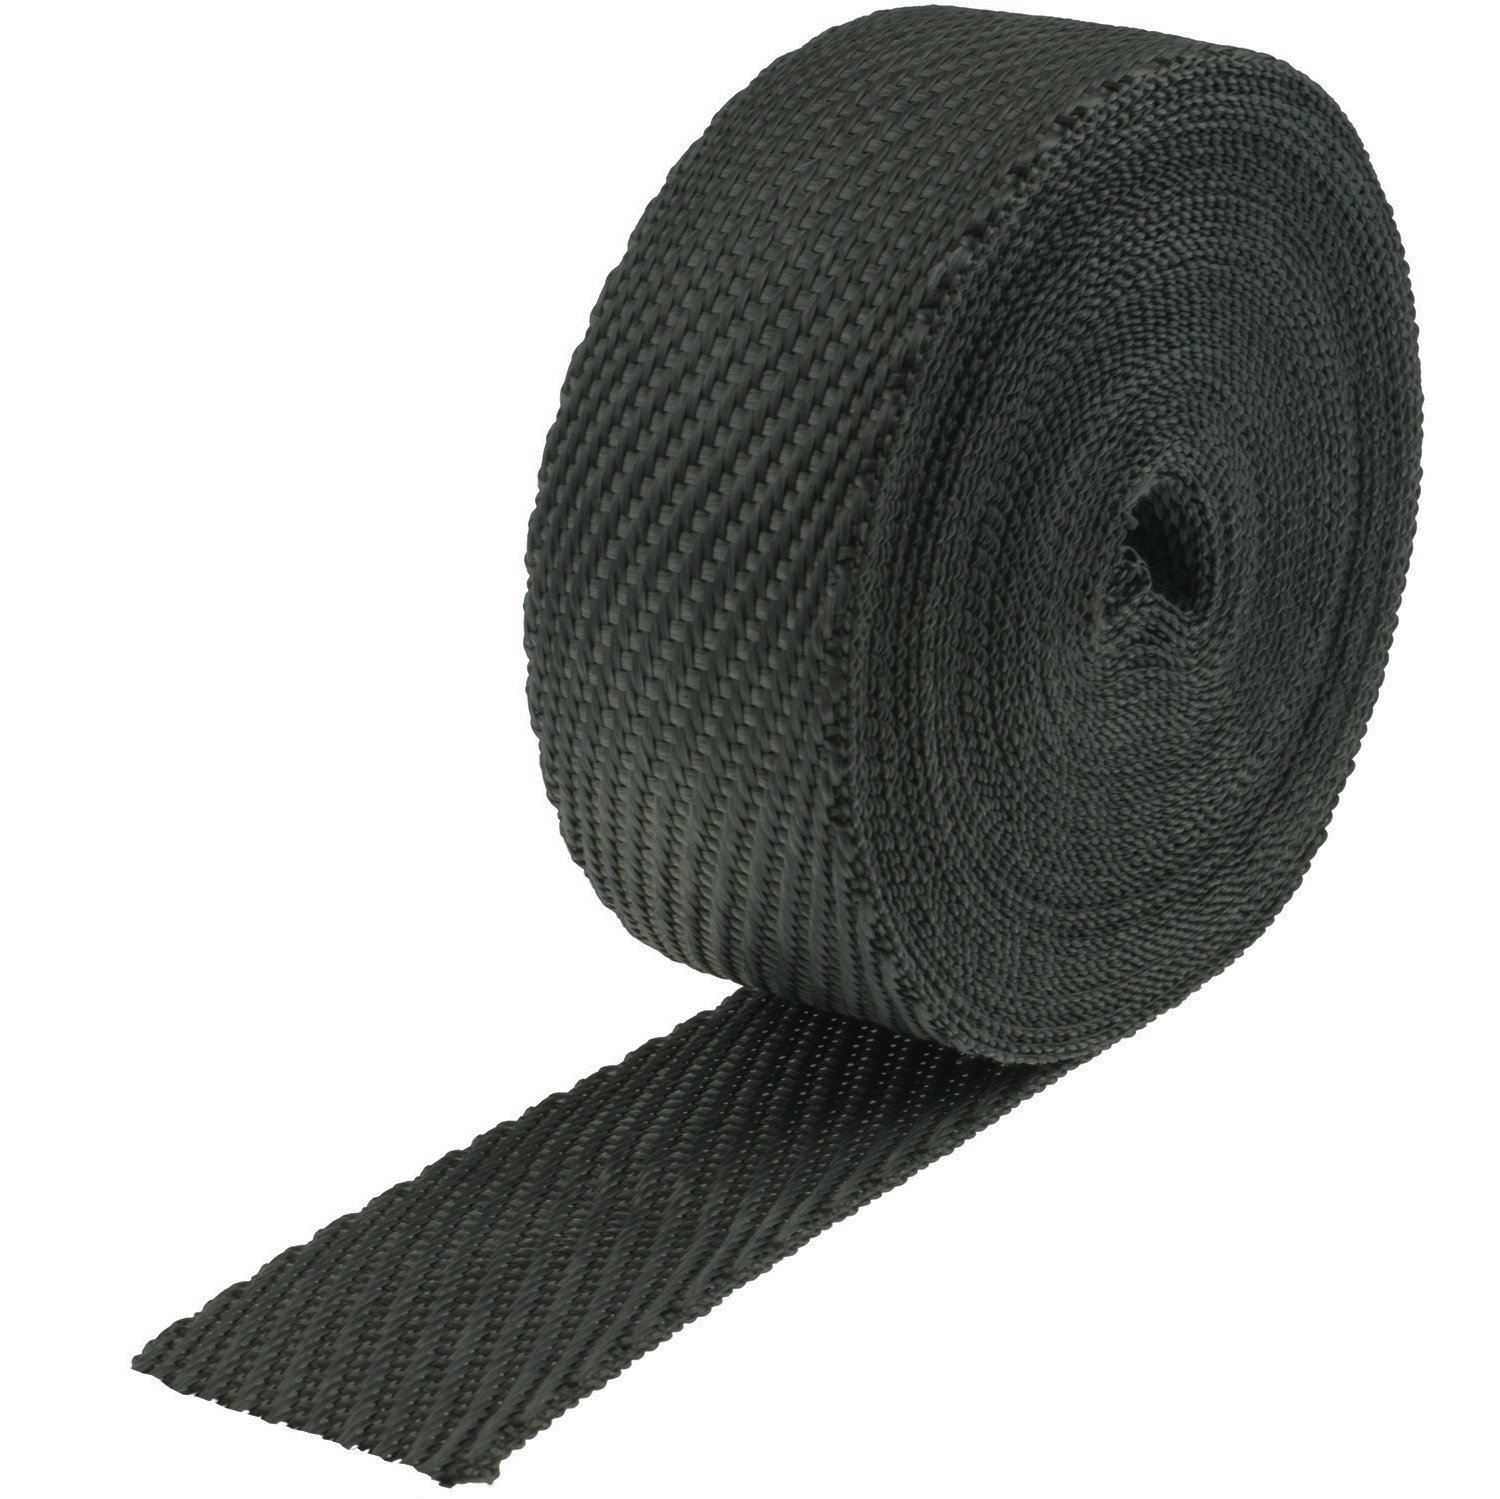 Heatshield Products 380011 Black 2 Wide x 15 Roll Cobra Skin Exhaust Wrap